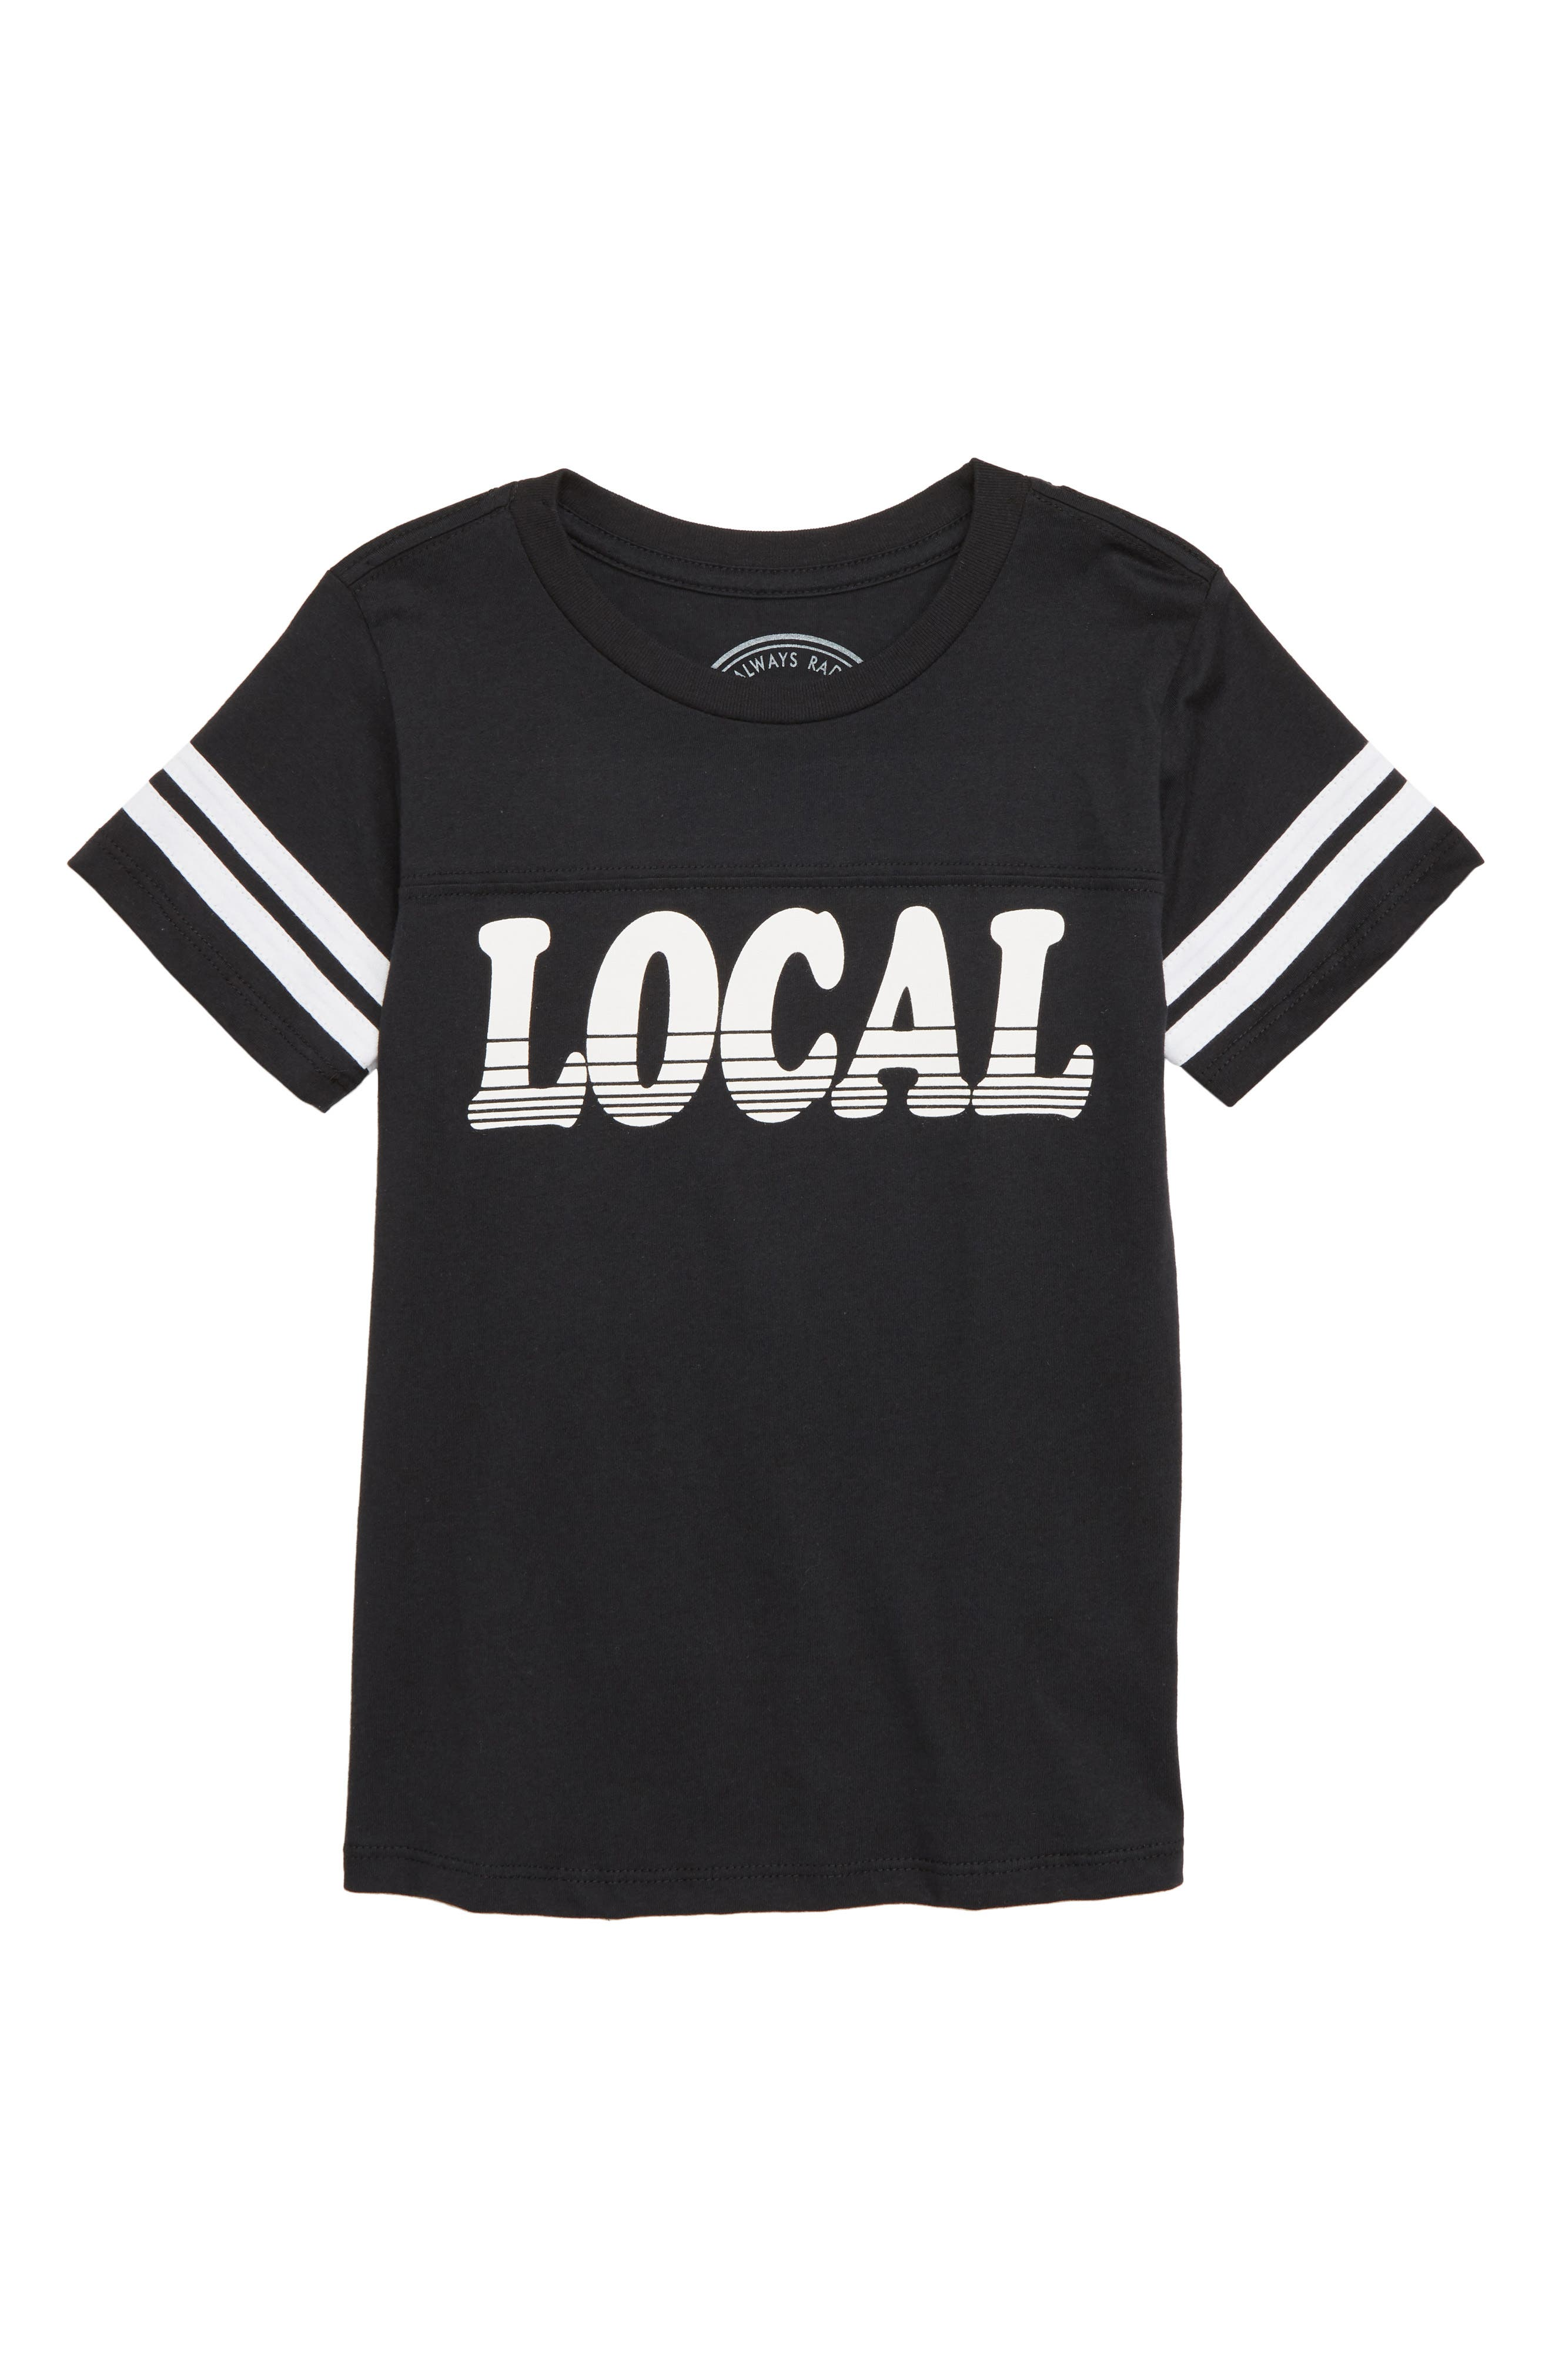 Local Football T-Shirt,                             Main thumbnail 1, color,                             001